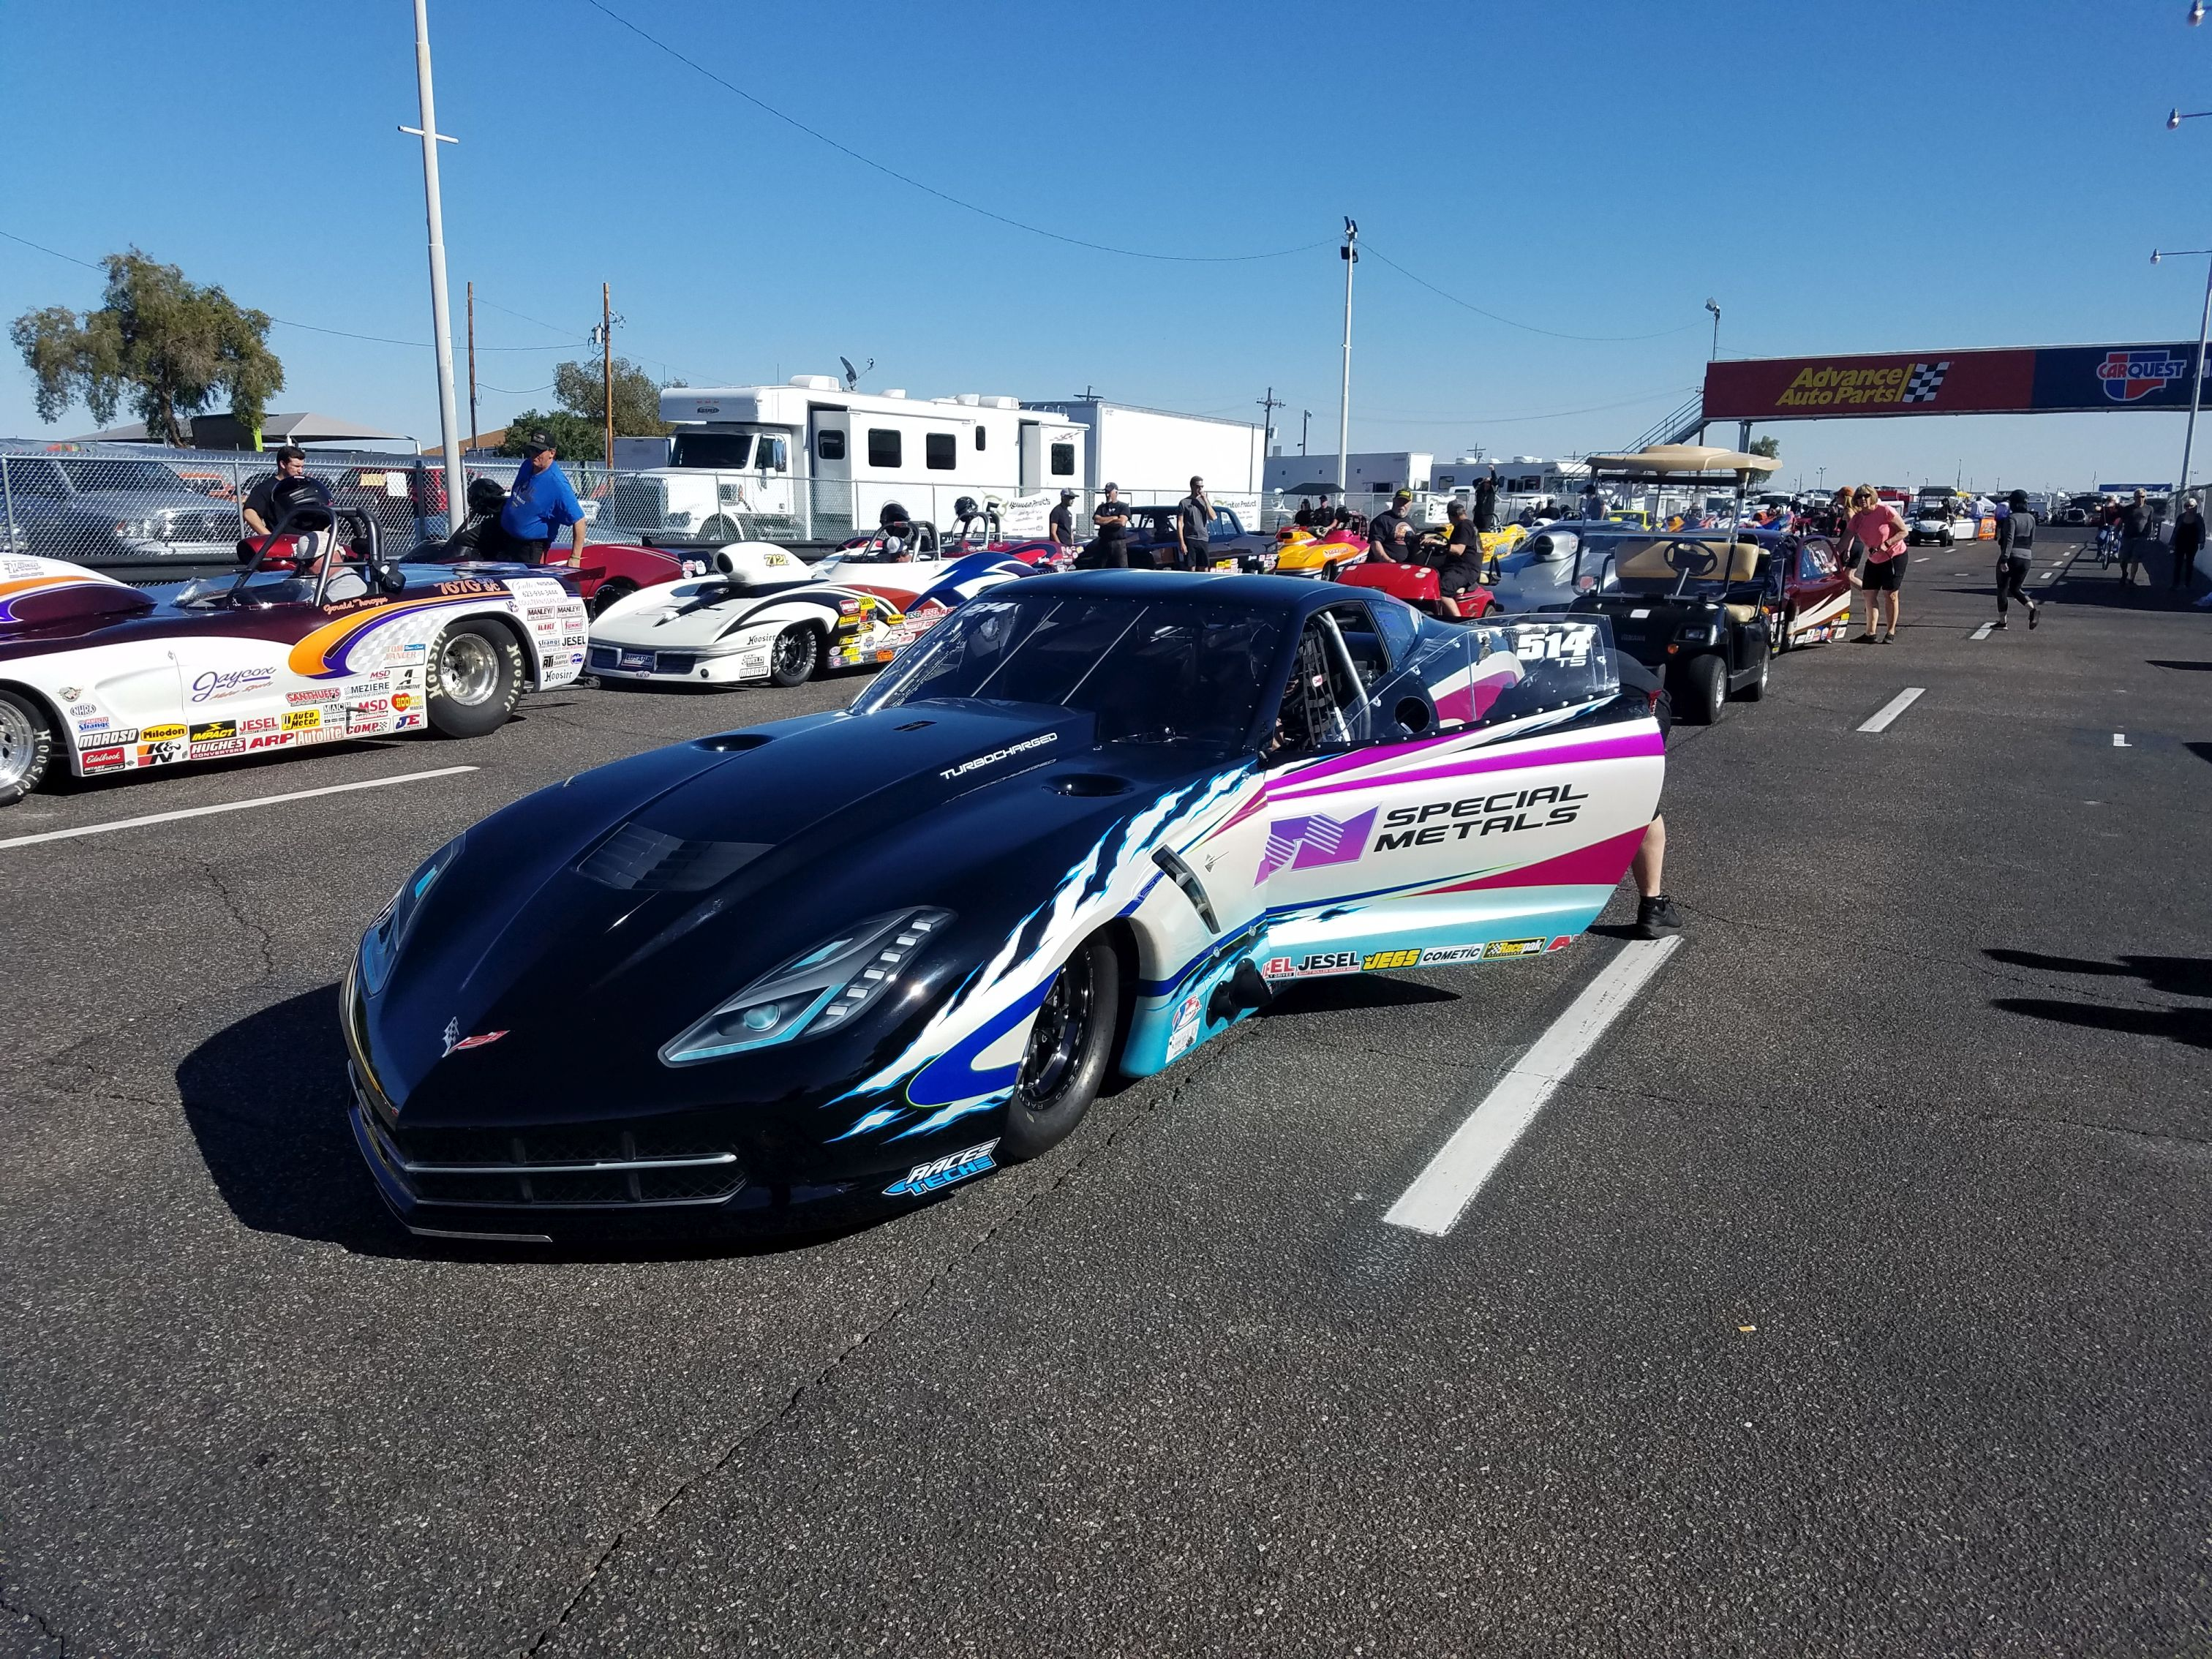 Twin Turbo Vette of Phil Unruh Will be a Contender | Race Tech Race ...